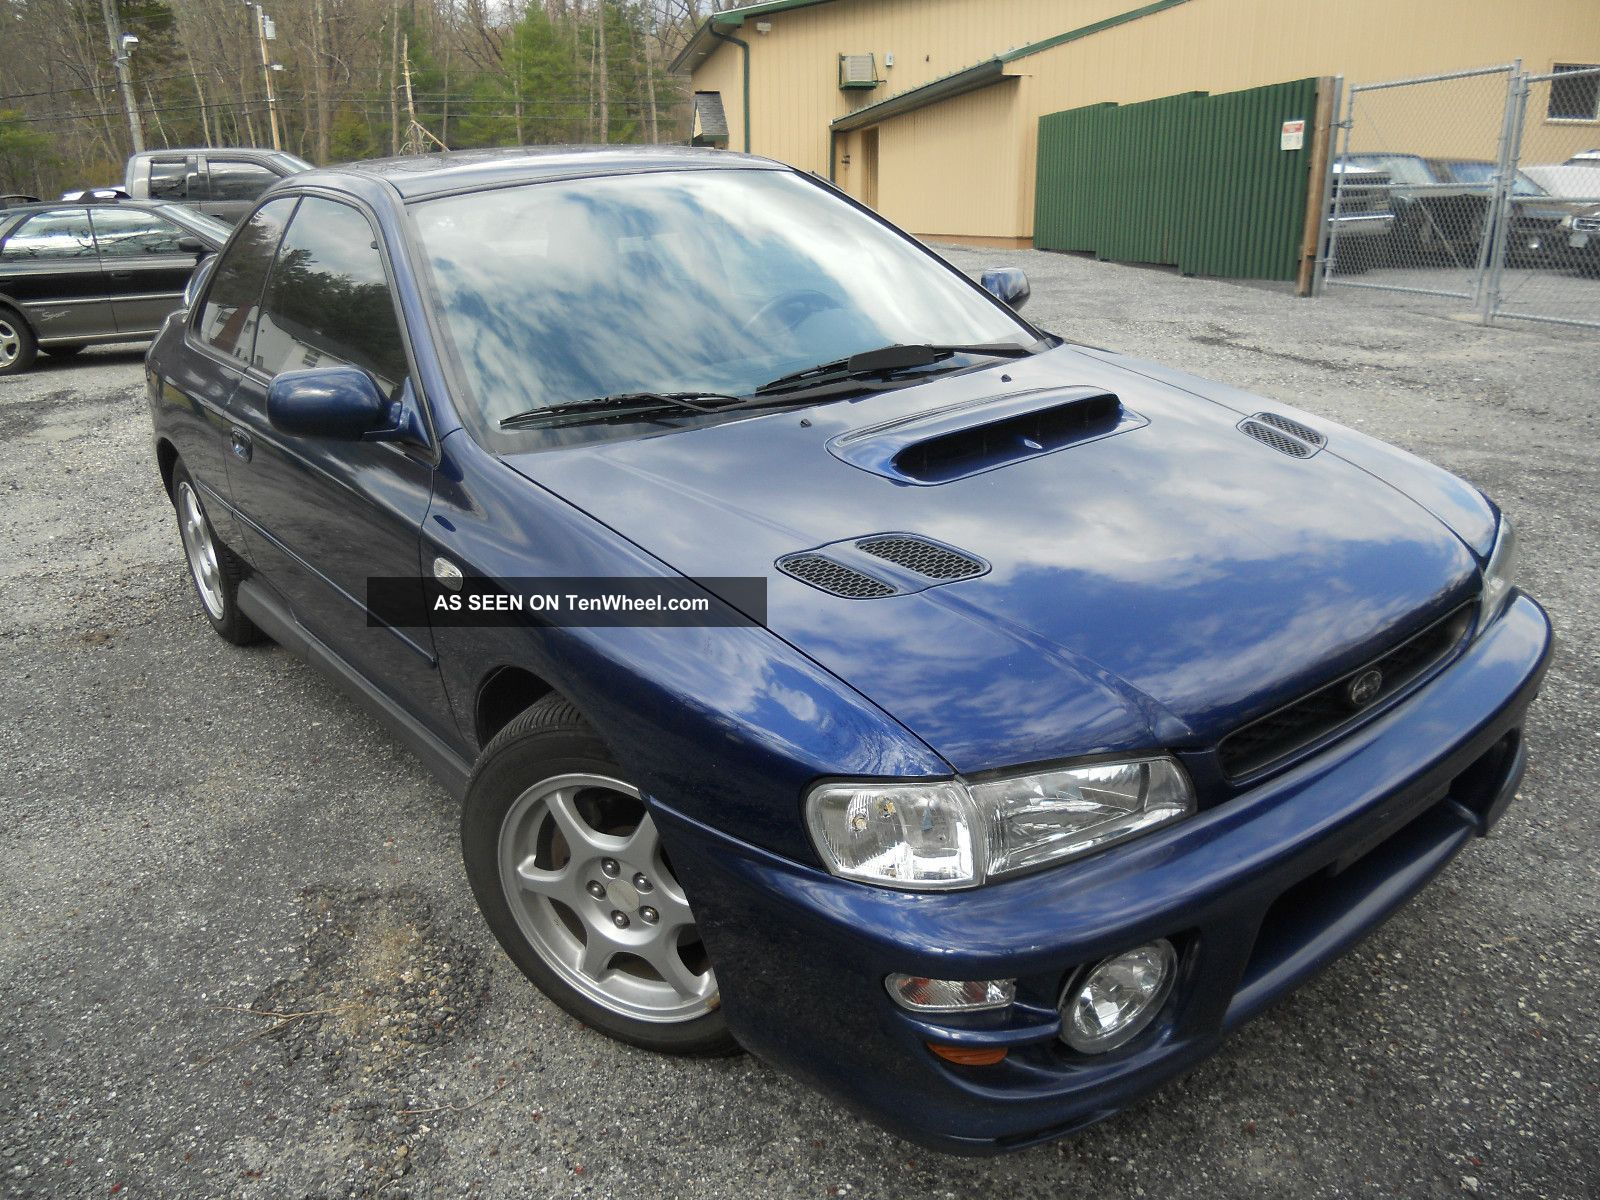 2000 subaru impreza rs coupe 2 door 2 5l. Black Bedroom Furniture Sets. Home Design Ideas